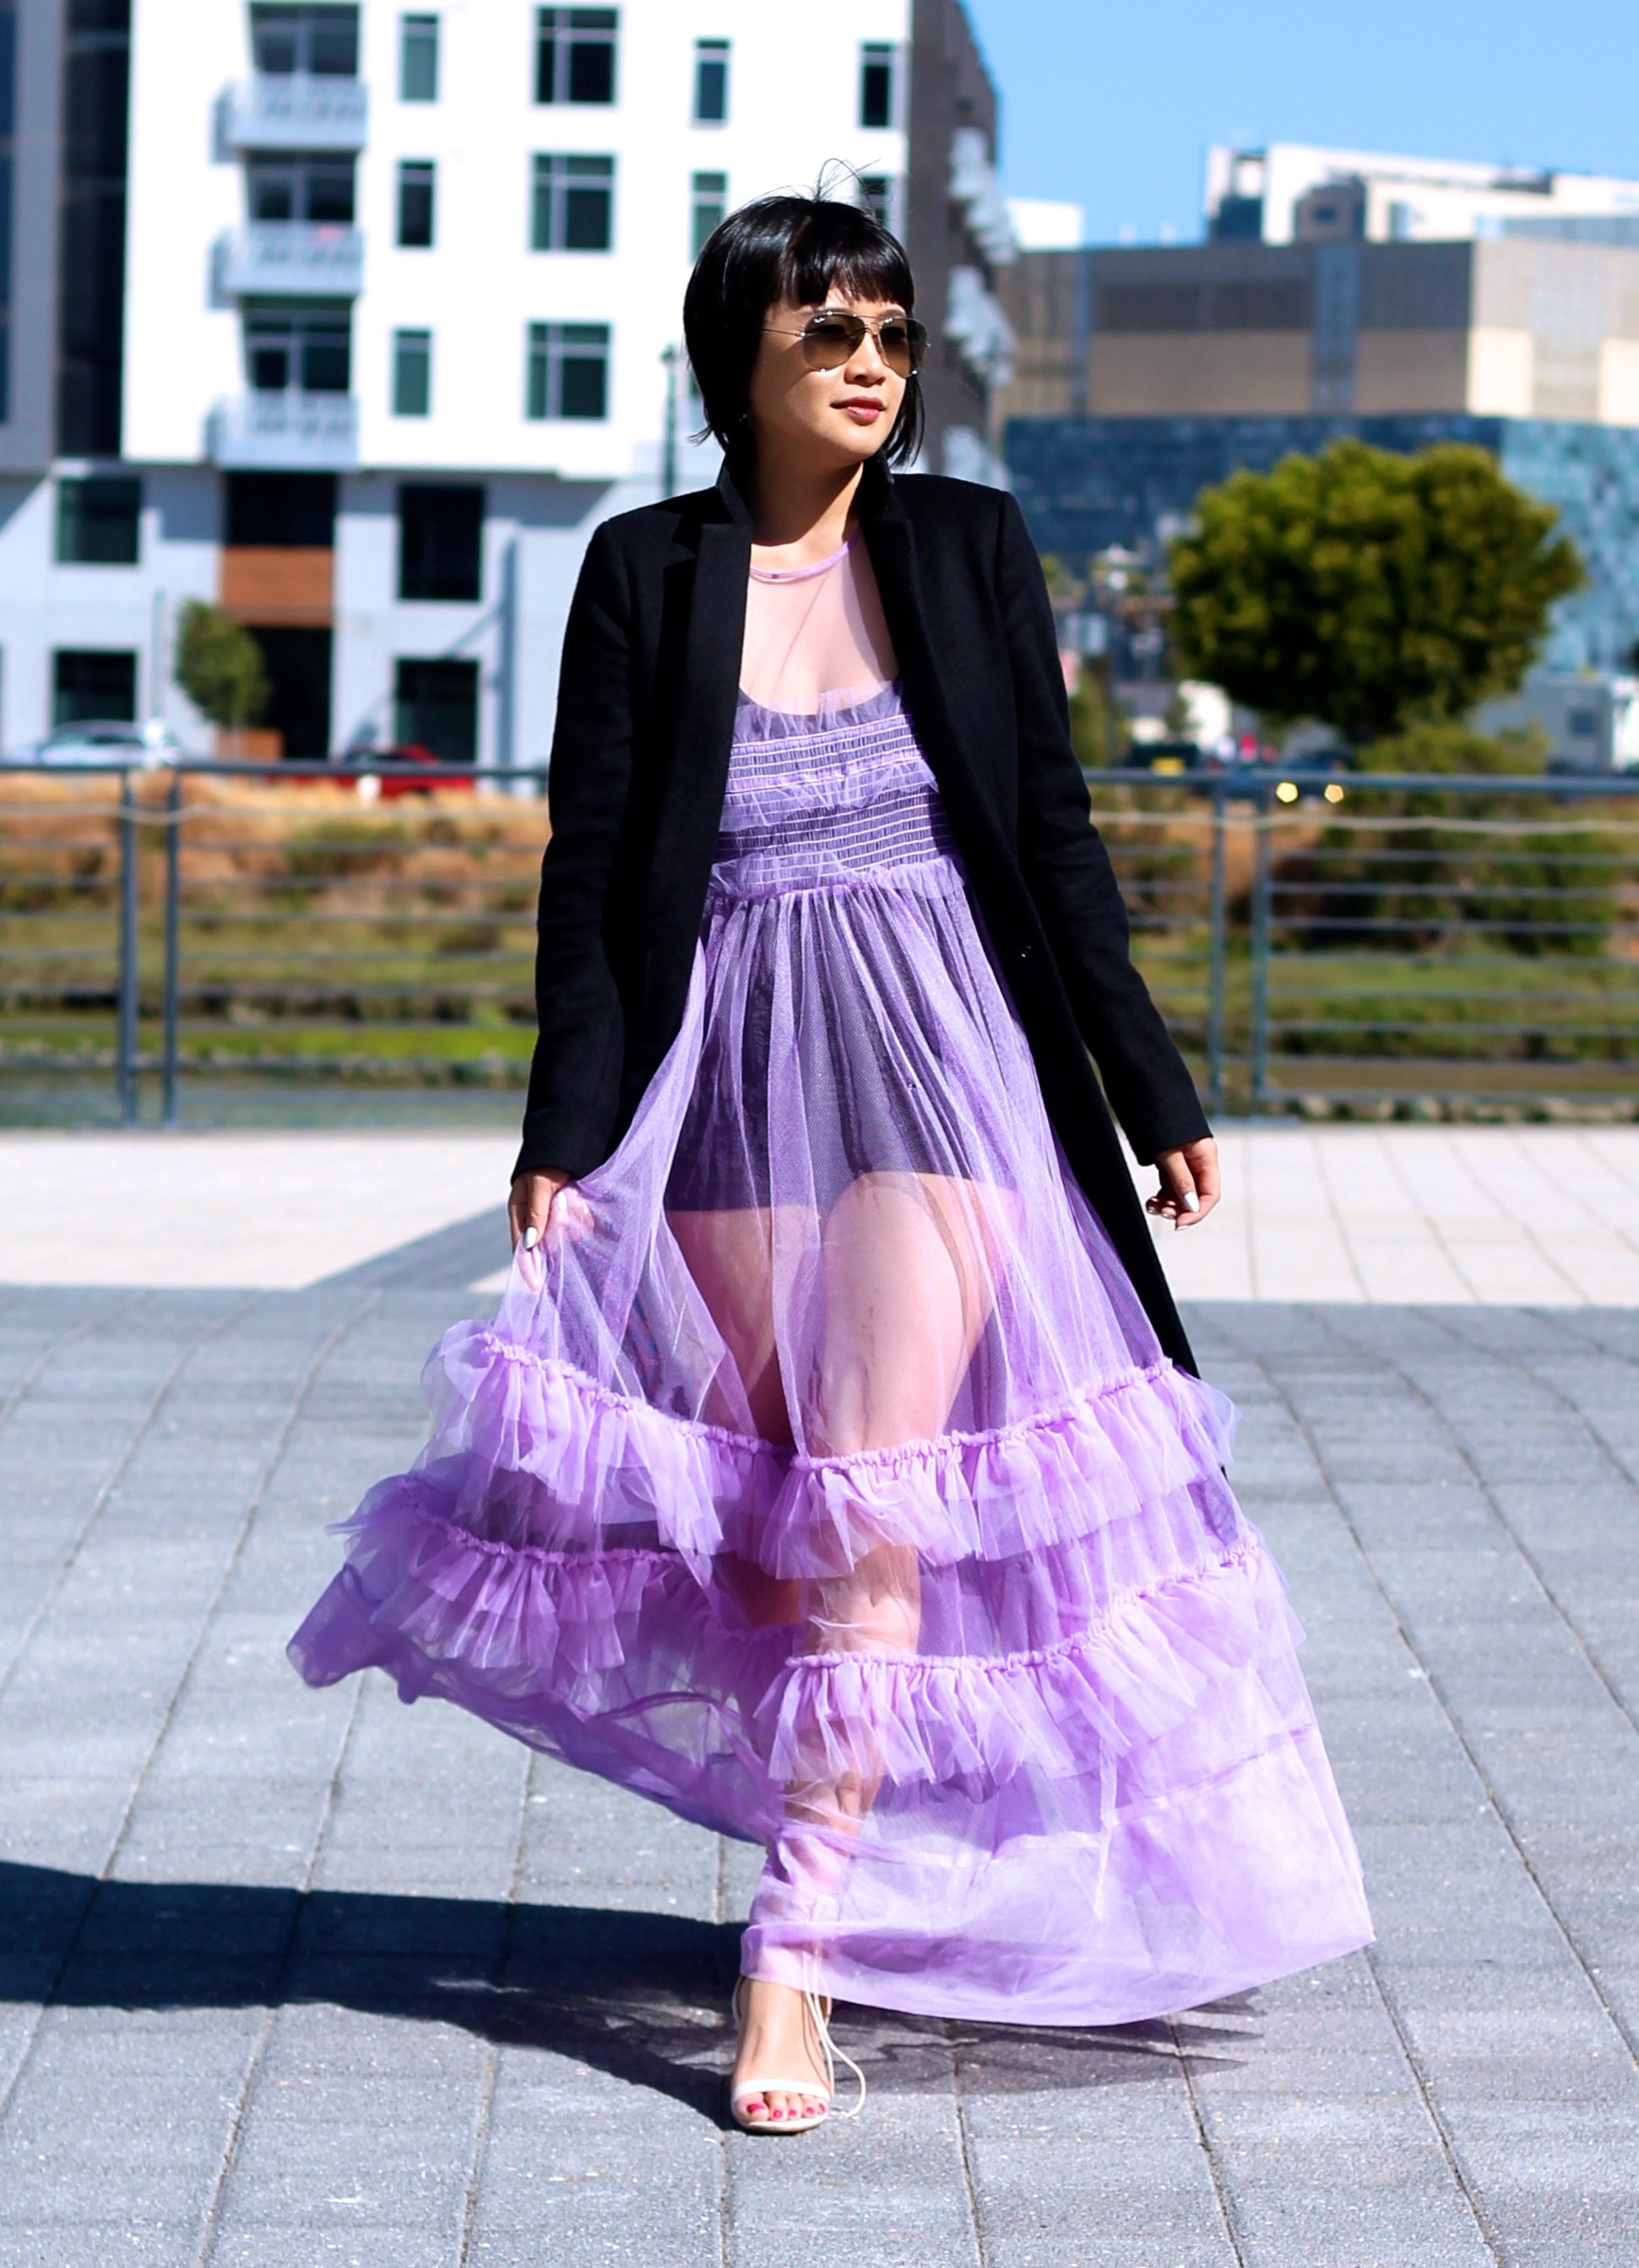 Nasty Gal dress, All Saints jacket, Chinese Laundry shoes, Ray-Ban sunglasses